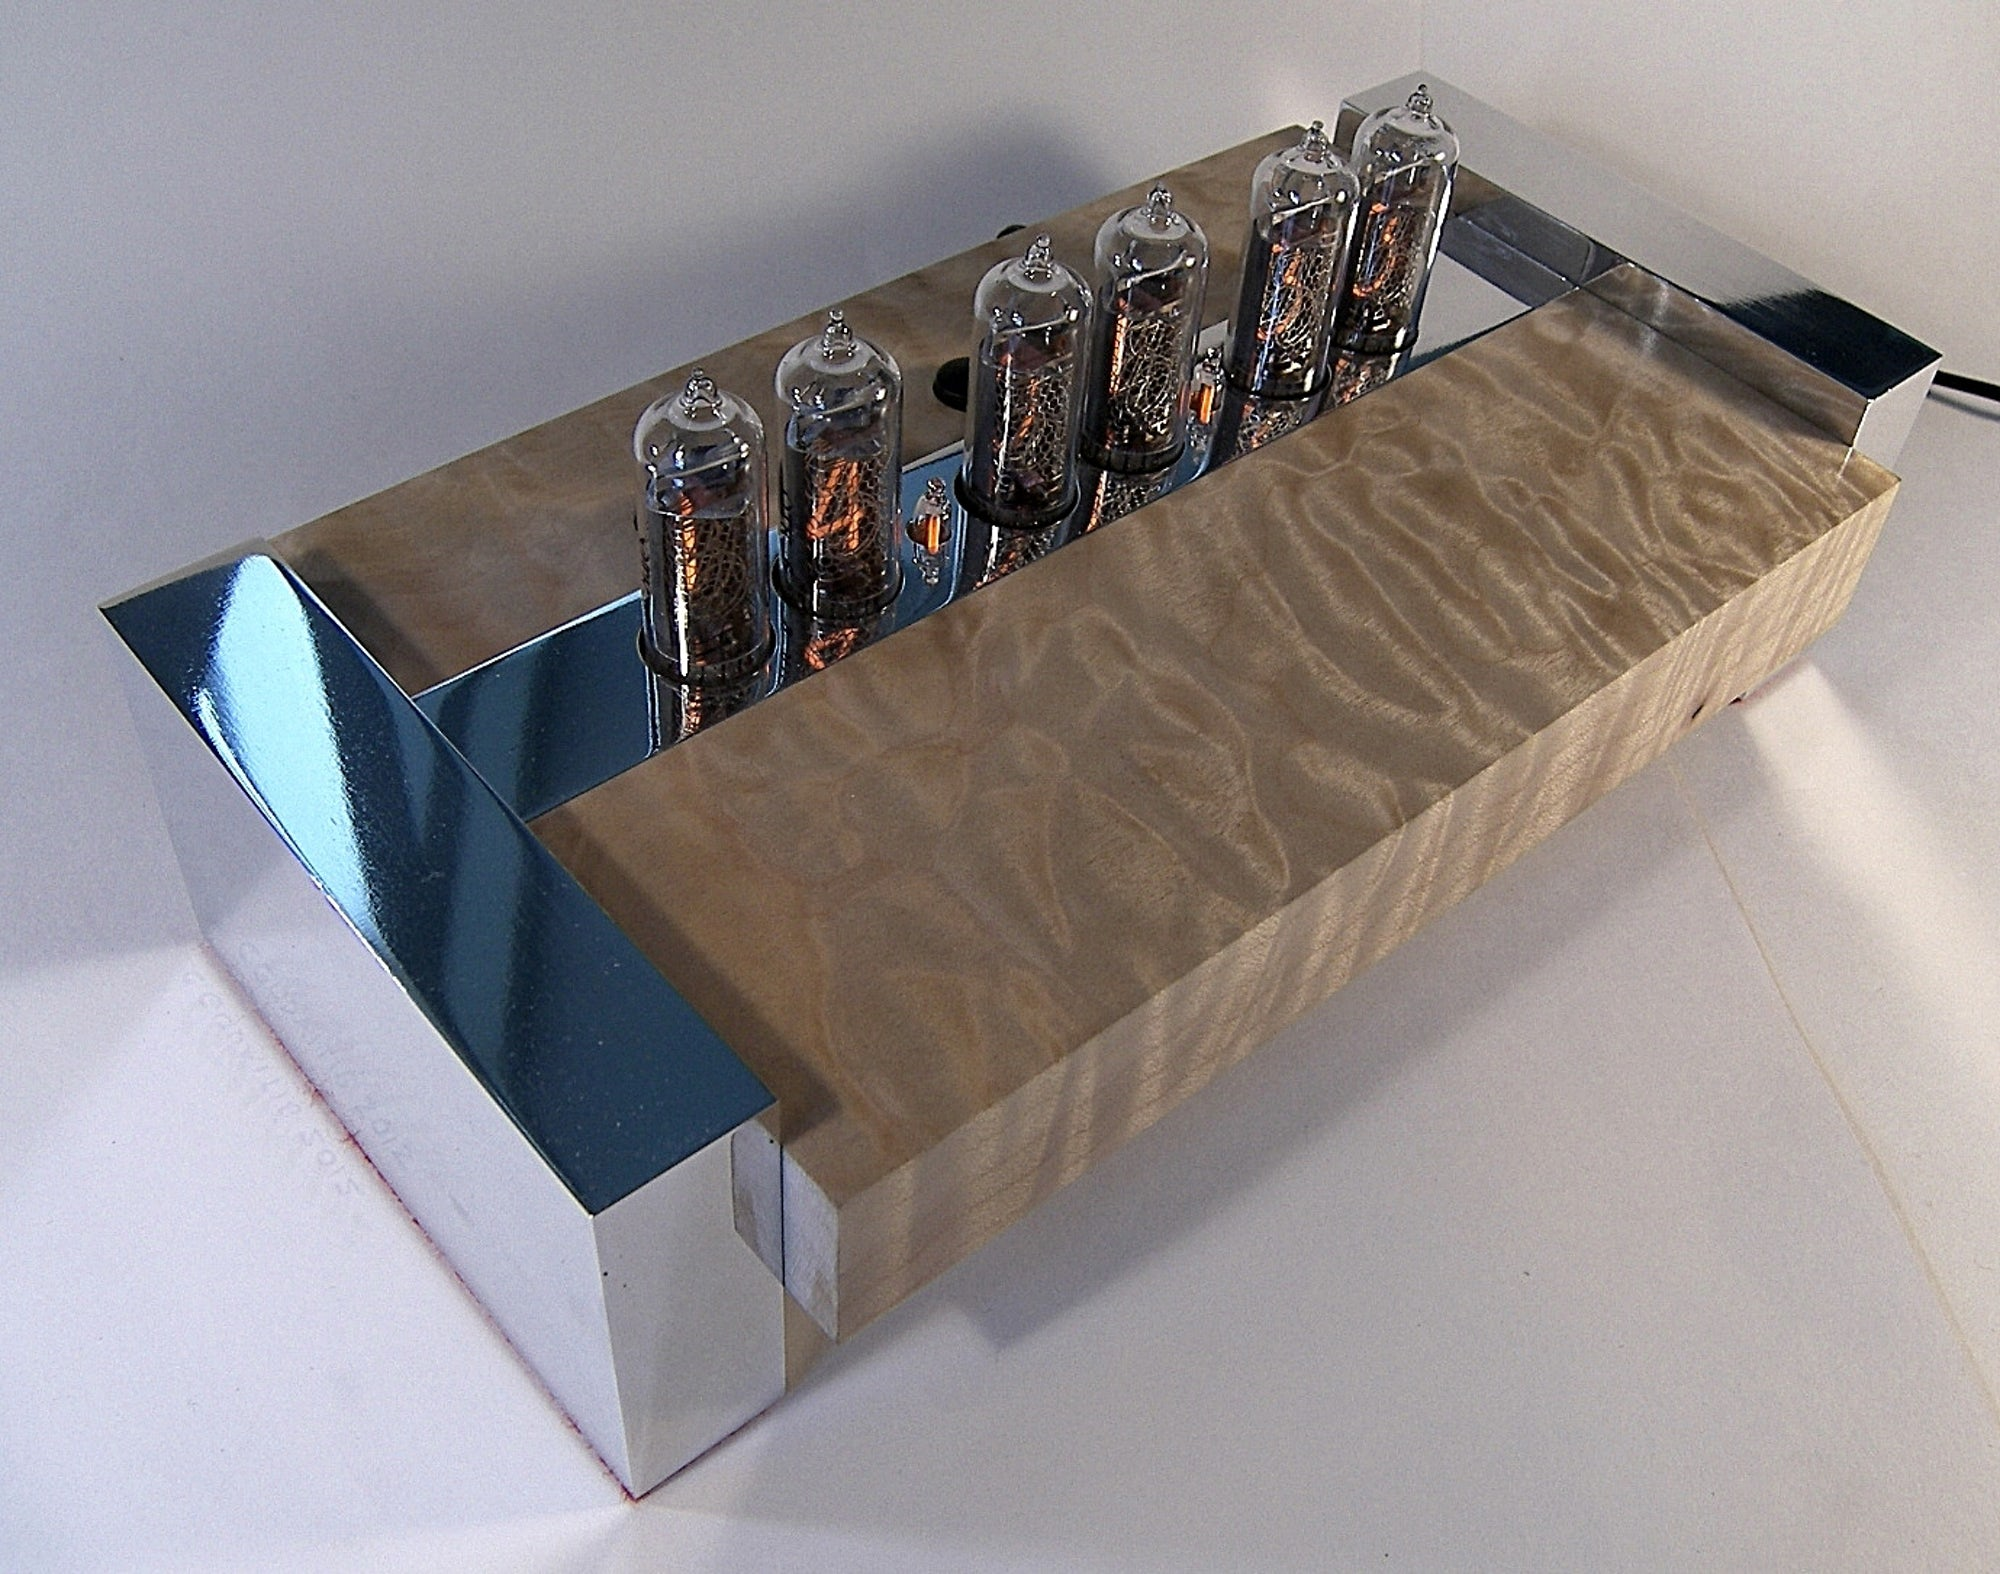 Quilted maple nixie tube clock